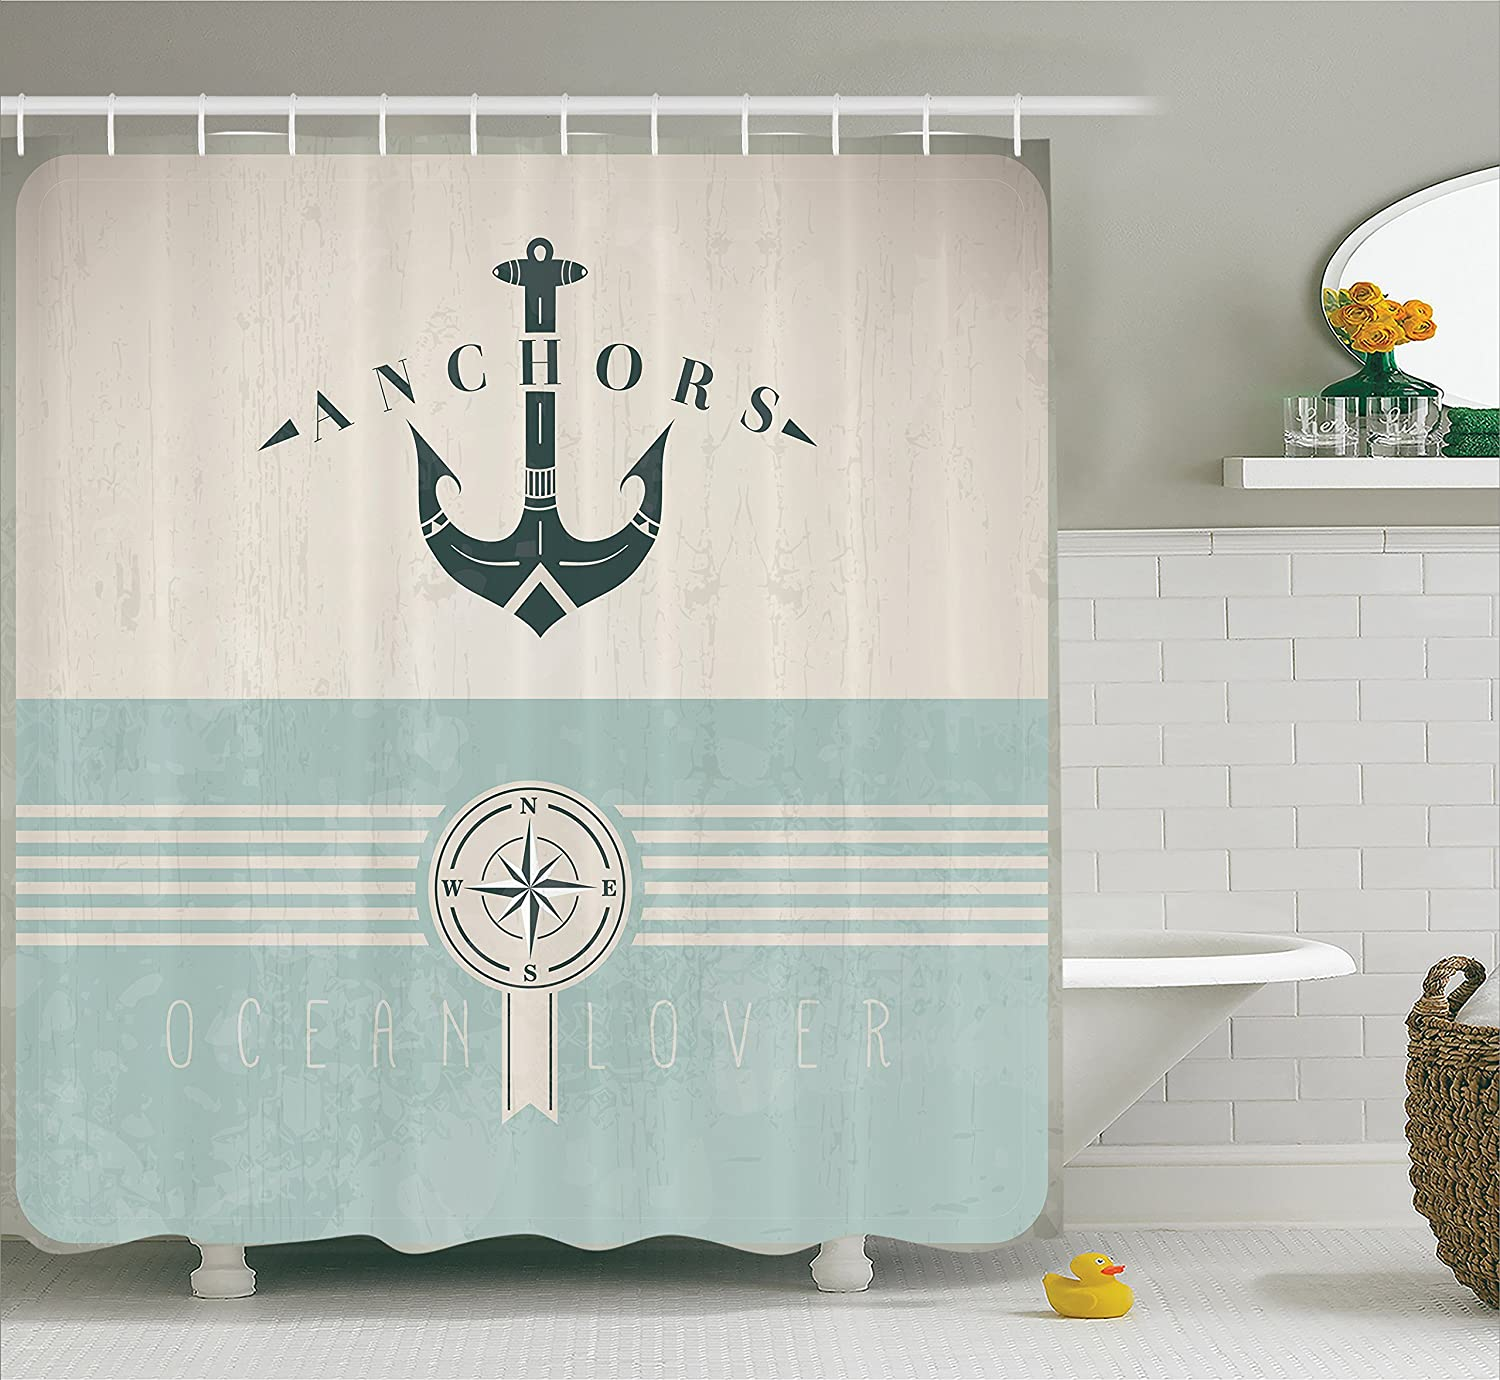 Ambesonne Ocean Decor Shower Curtain, Nautical Anchor Sailor Sea Directions Antiqued Theme, Polyester Fabric Bathroom Set with Hooks, 69 W X 70 L Inches, Beige Turquoise and Dark Green